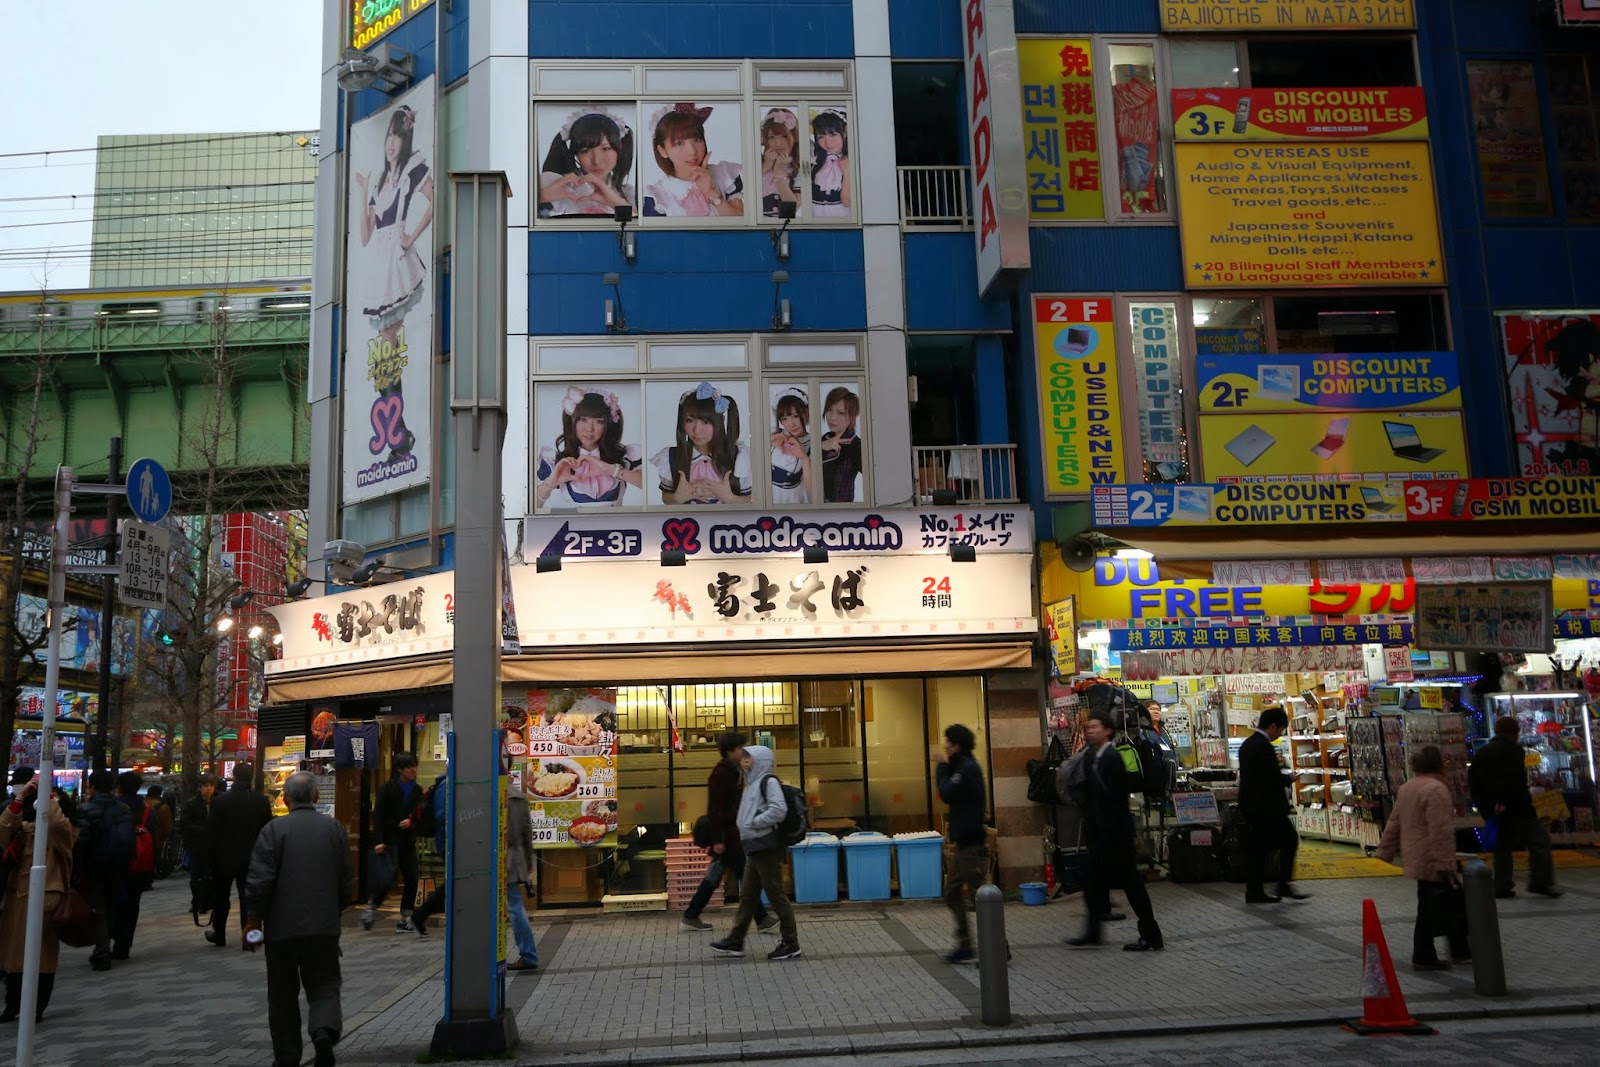 One of the maid cafes can be seen nearby Akihabara Station in Tokyo, Japan